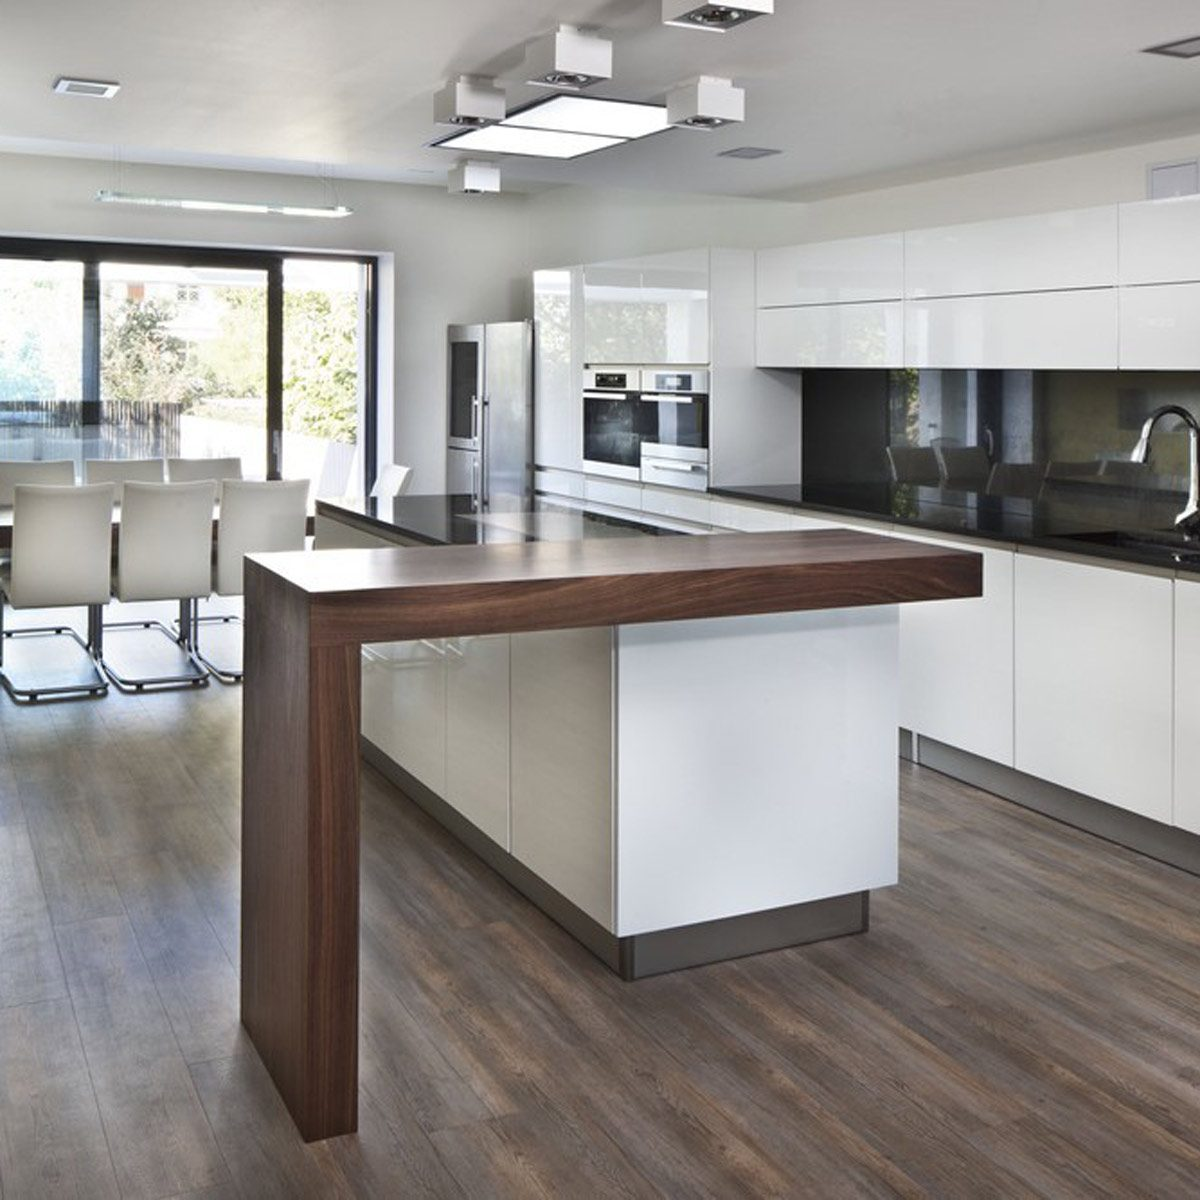 Image Result For How To Clean Vinyl Wood Floors